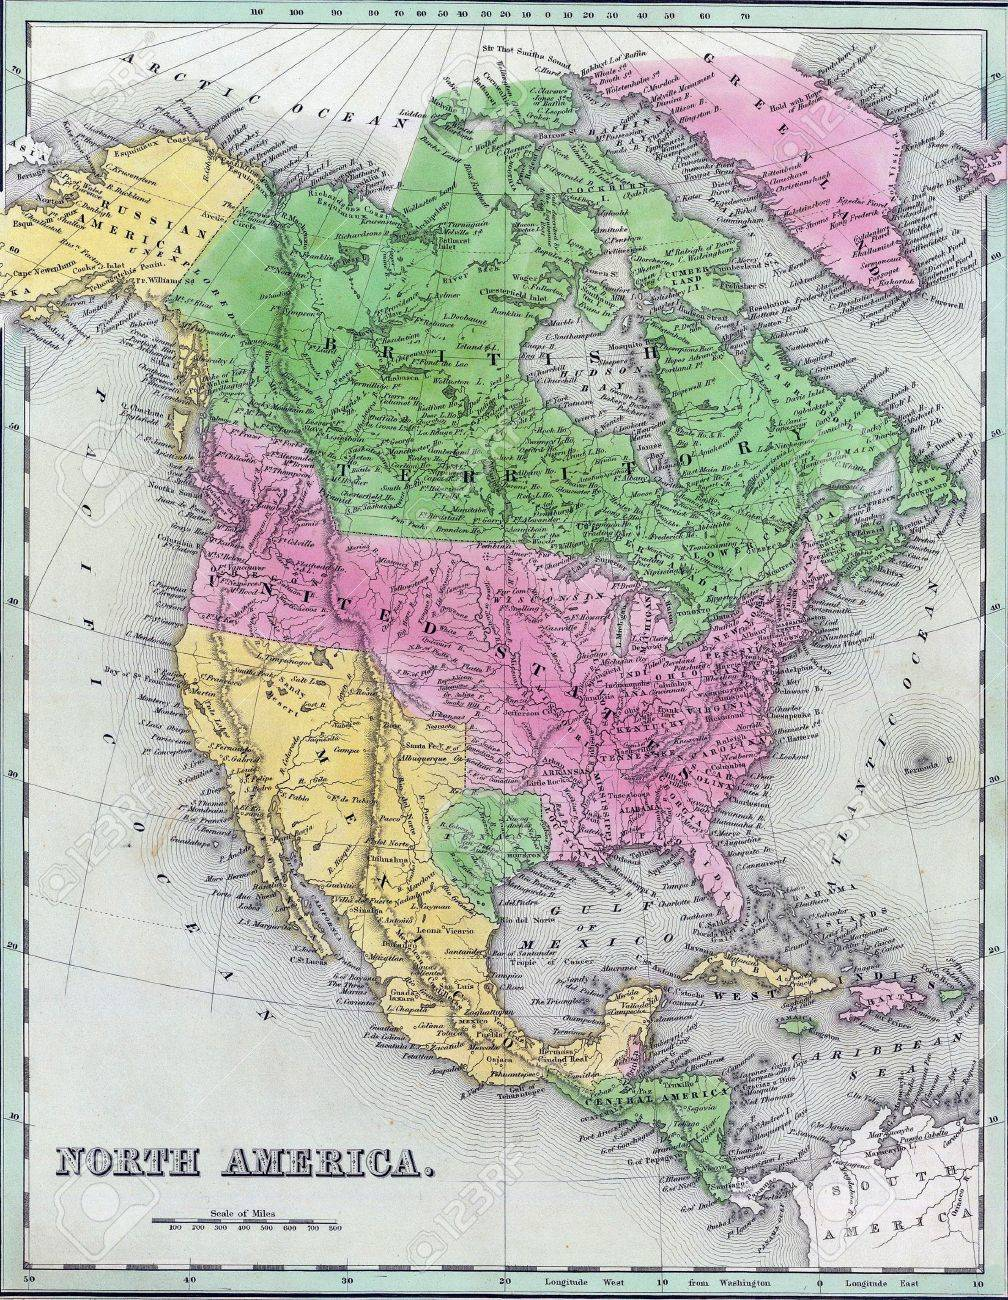 Antique Map Of North America.Antique Map Of North America From The Out Of Print 1841 Goodrich